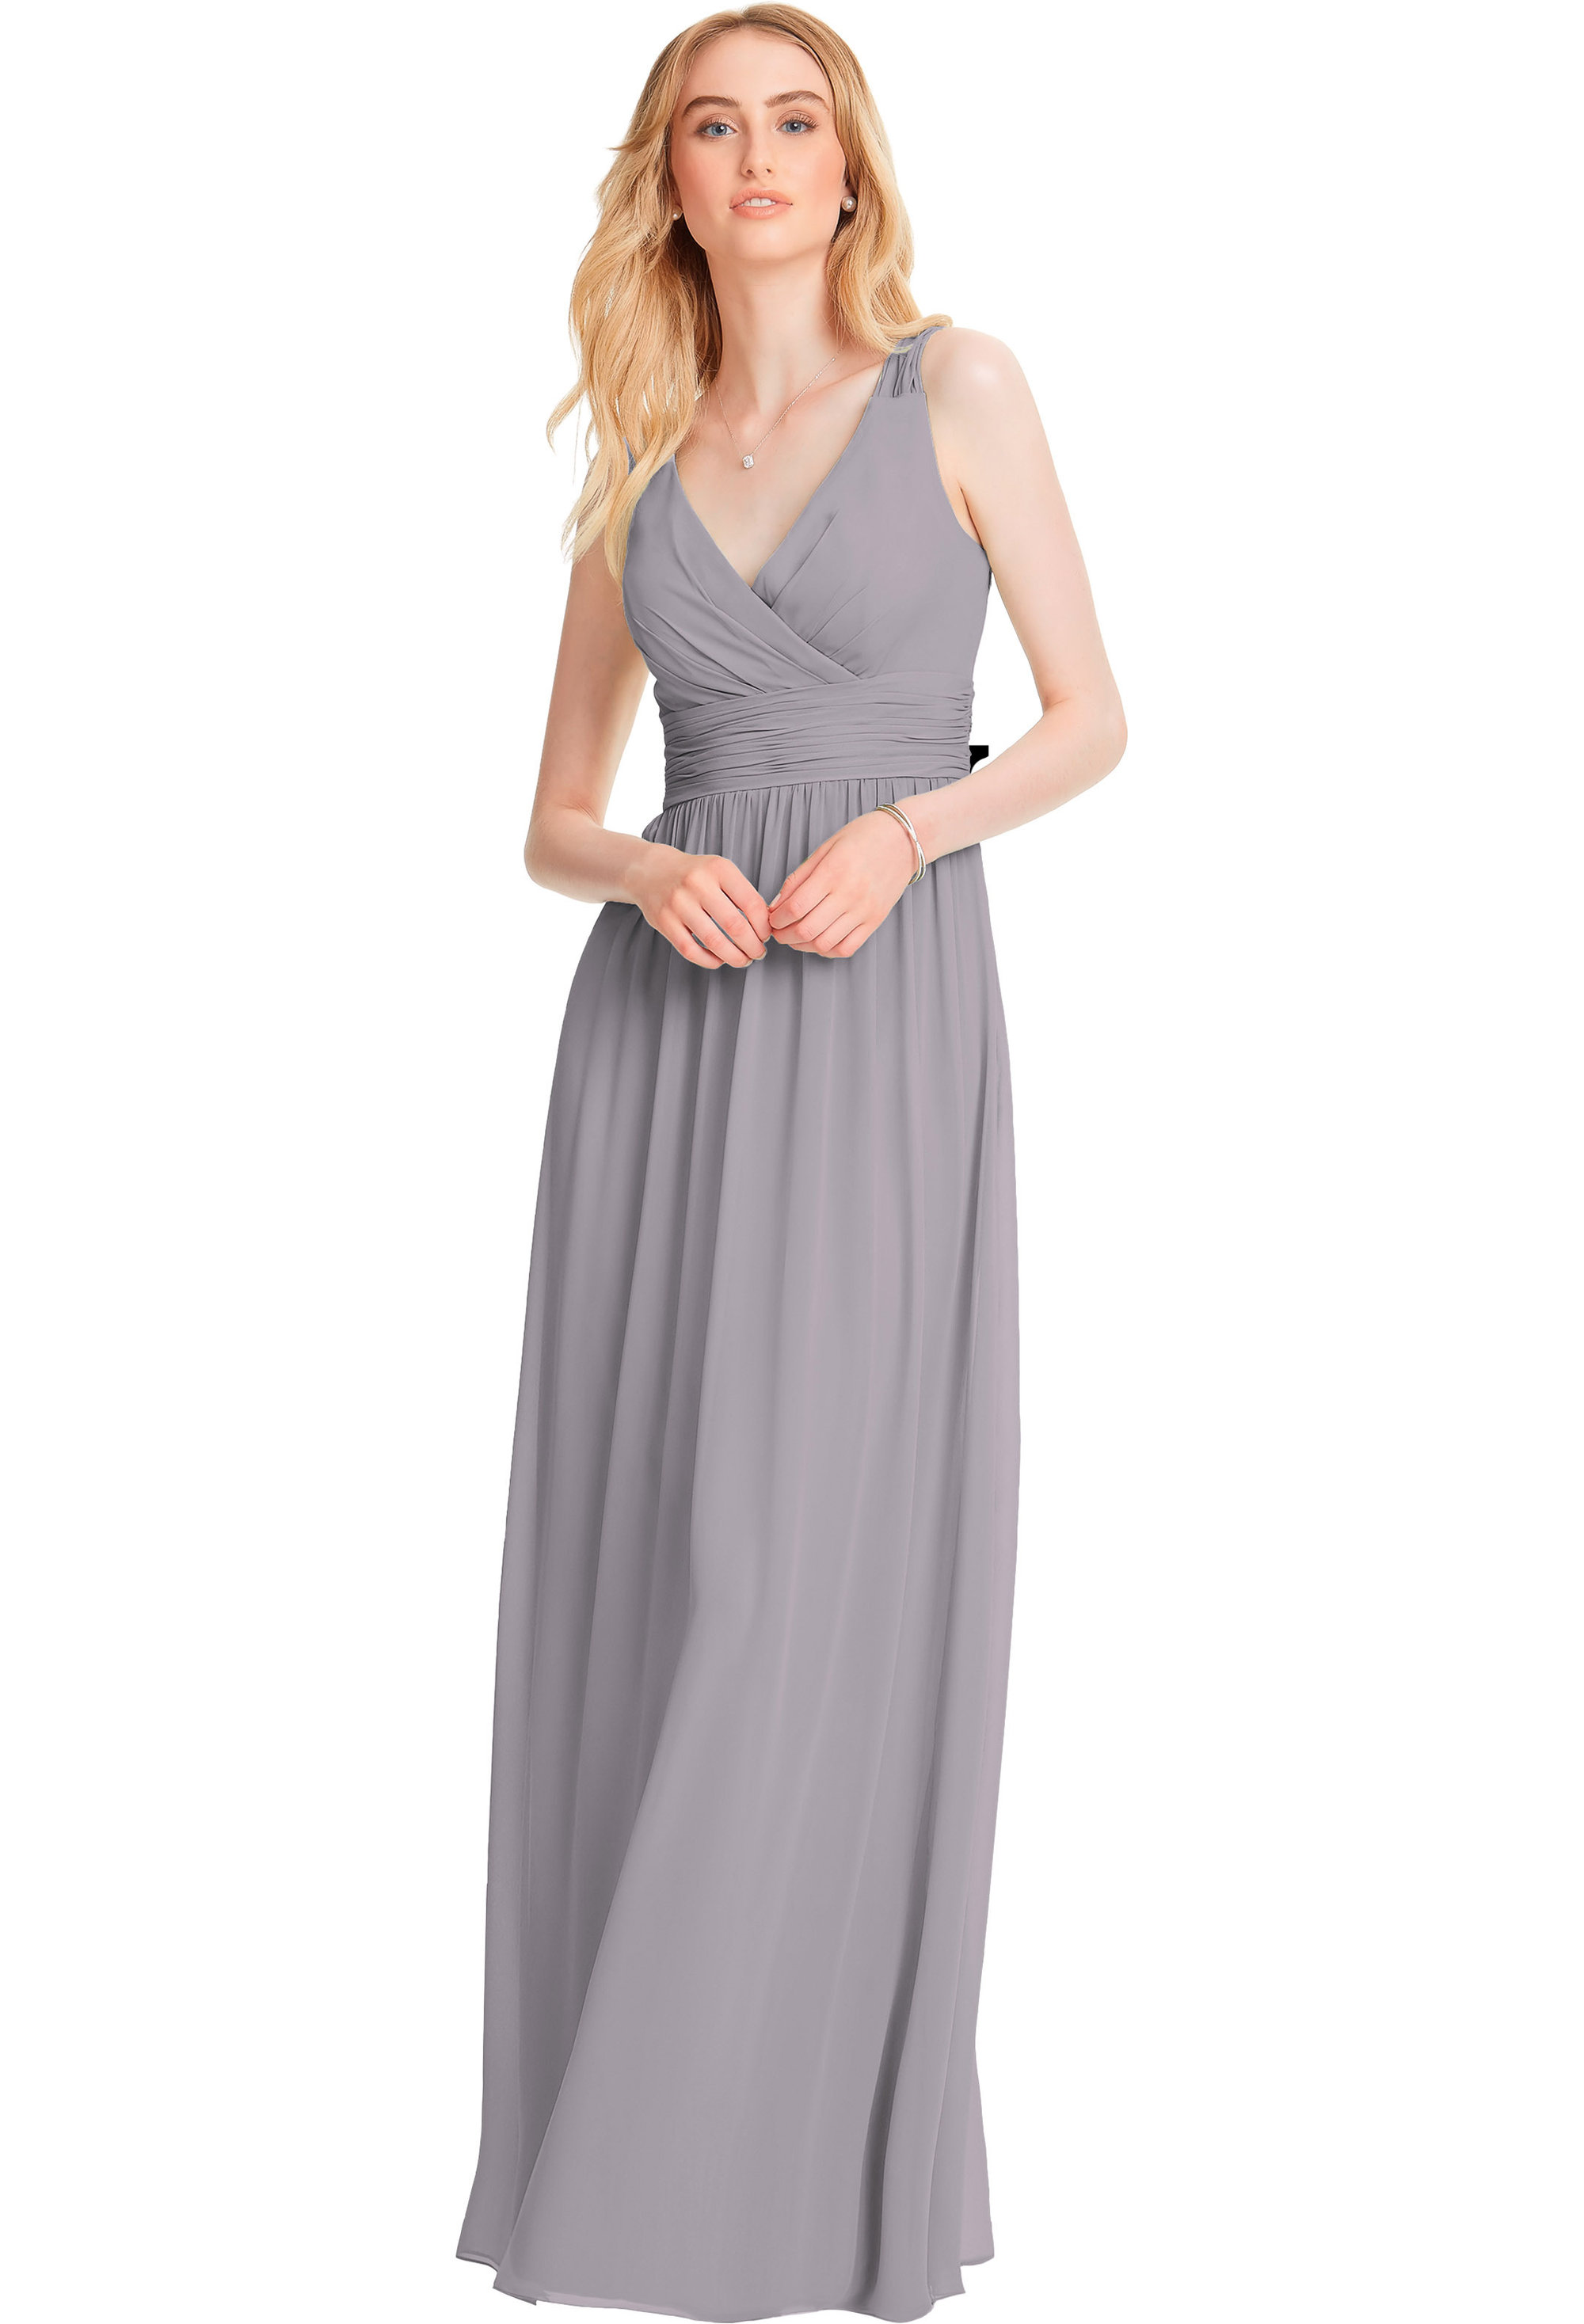 Bill Levkoff PEWTER Chiffon Sleeveless A-line gown, $200.00 Front